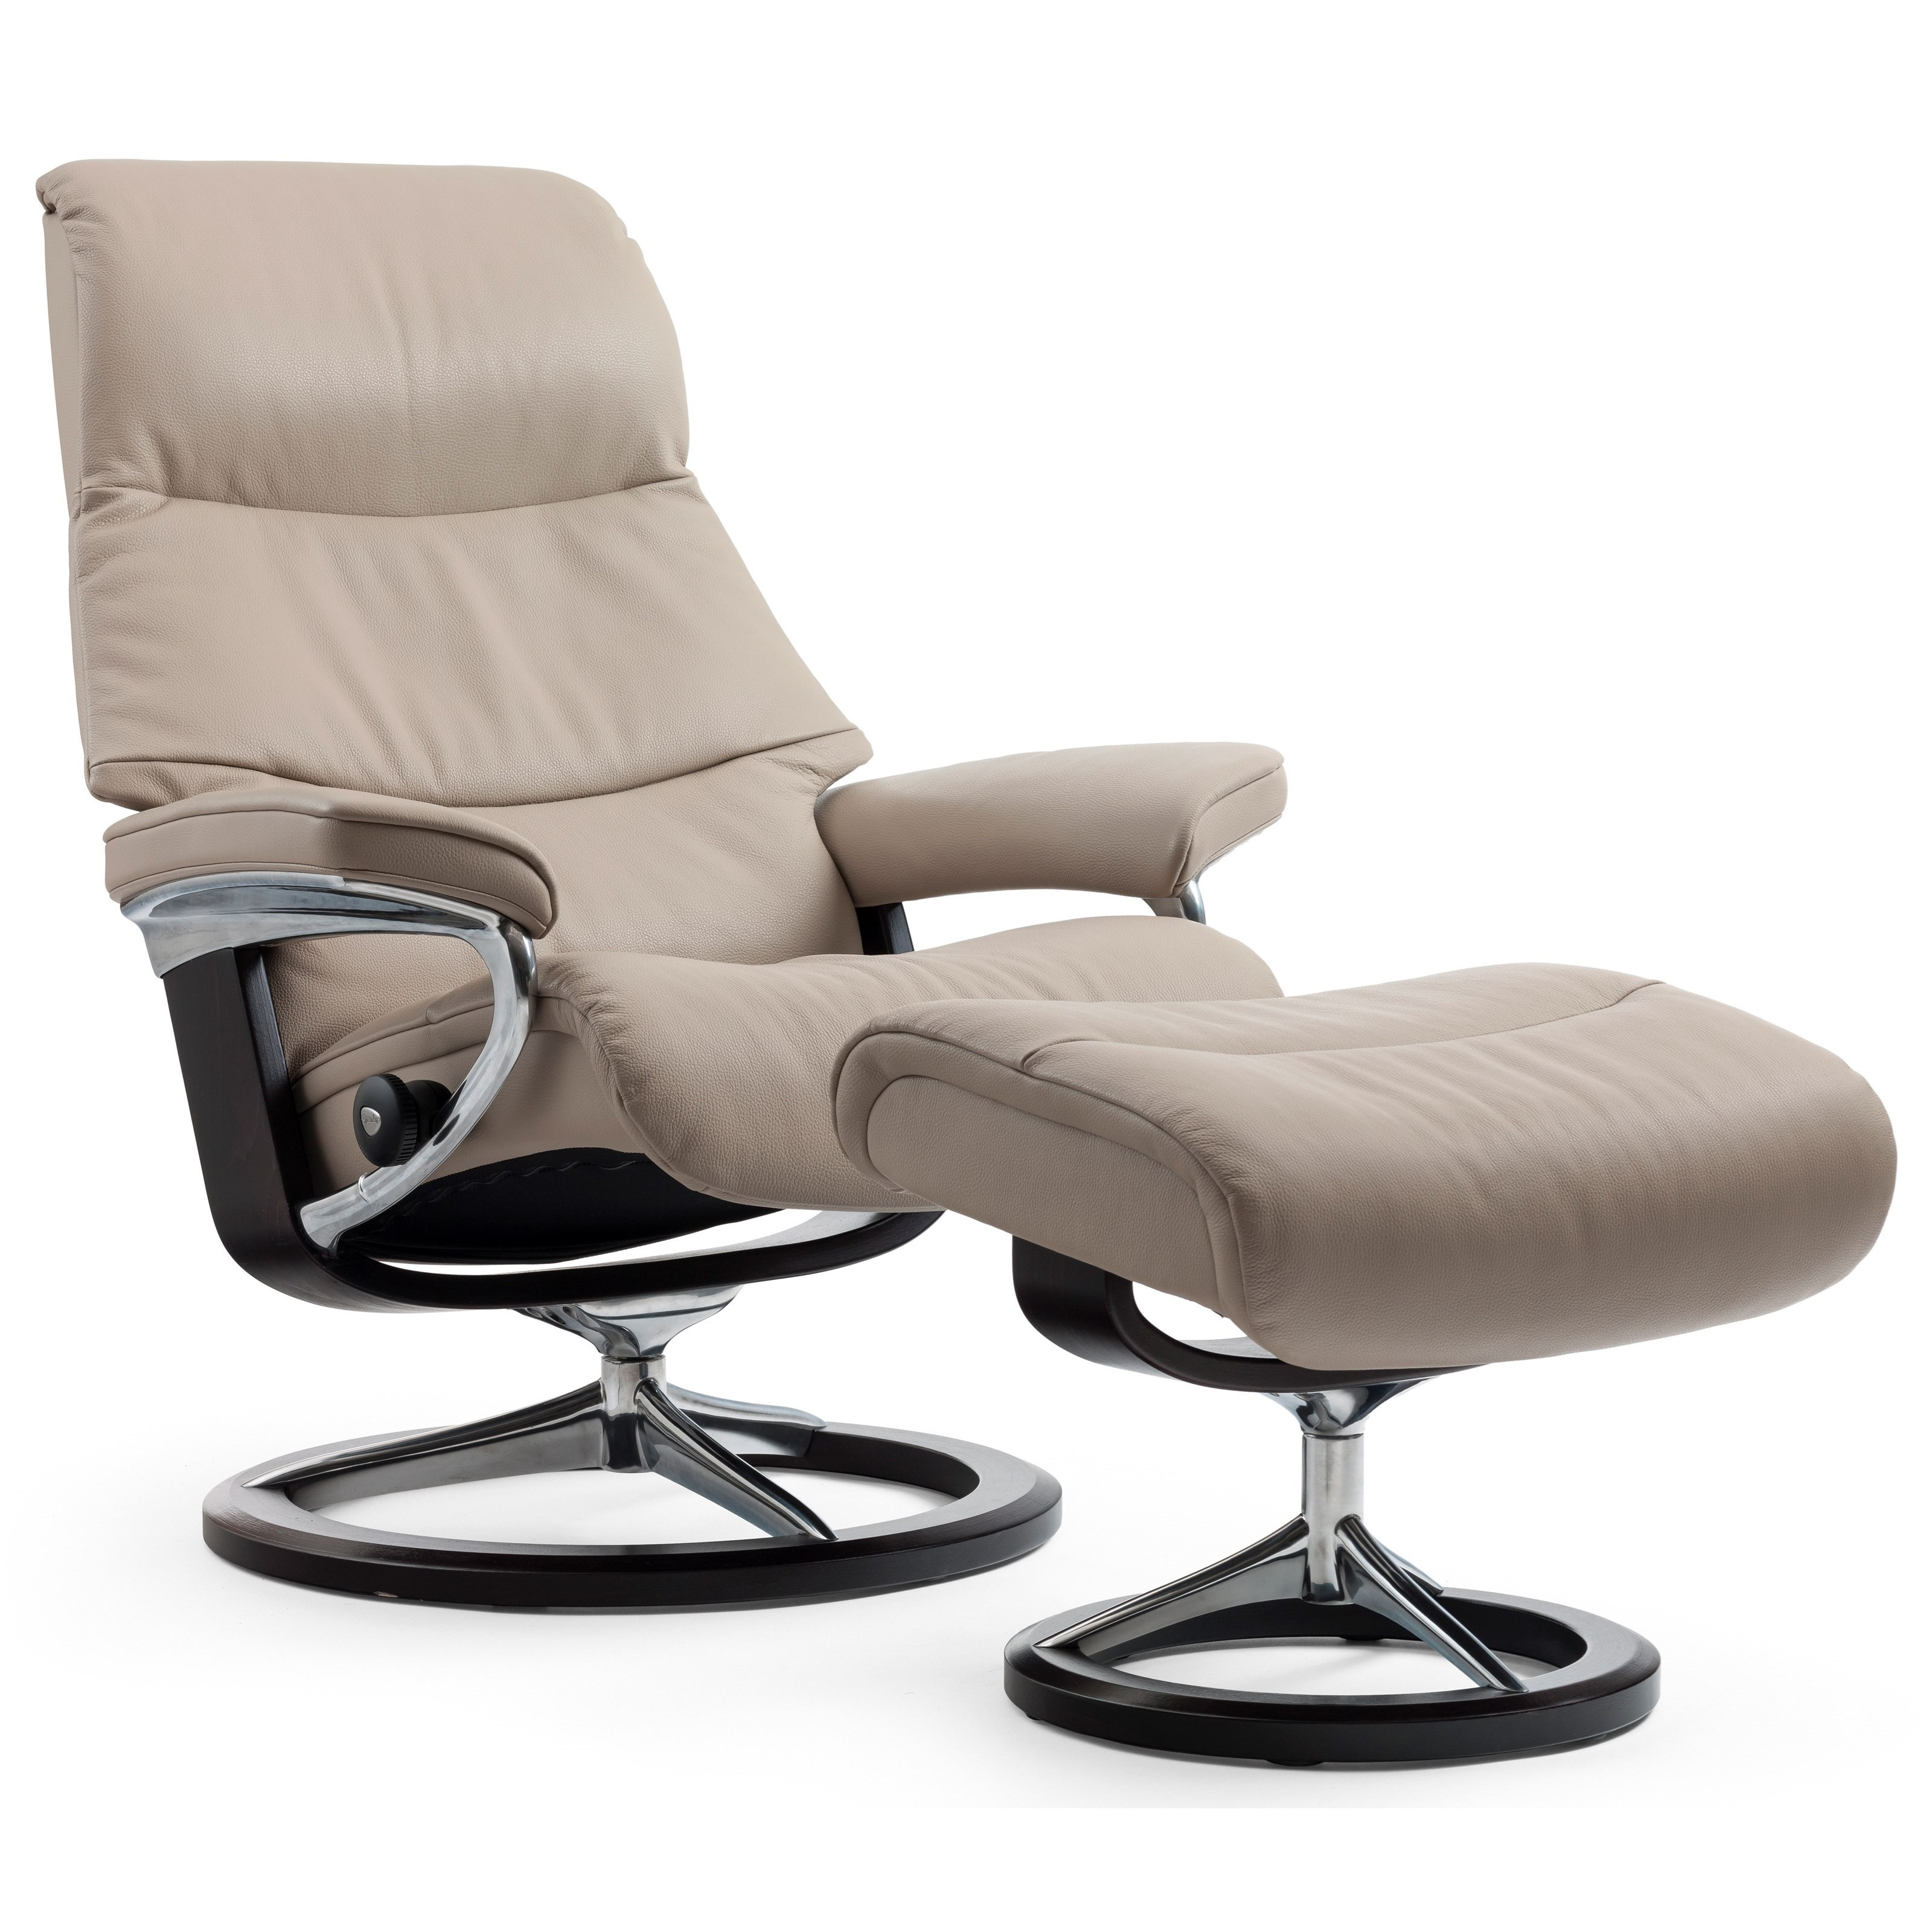 View Medium Chair & Ottoman with Signature Base by Stressless at Jordan's Home Furnishings